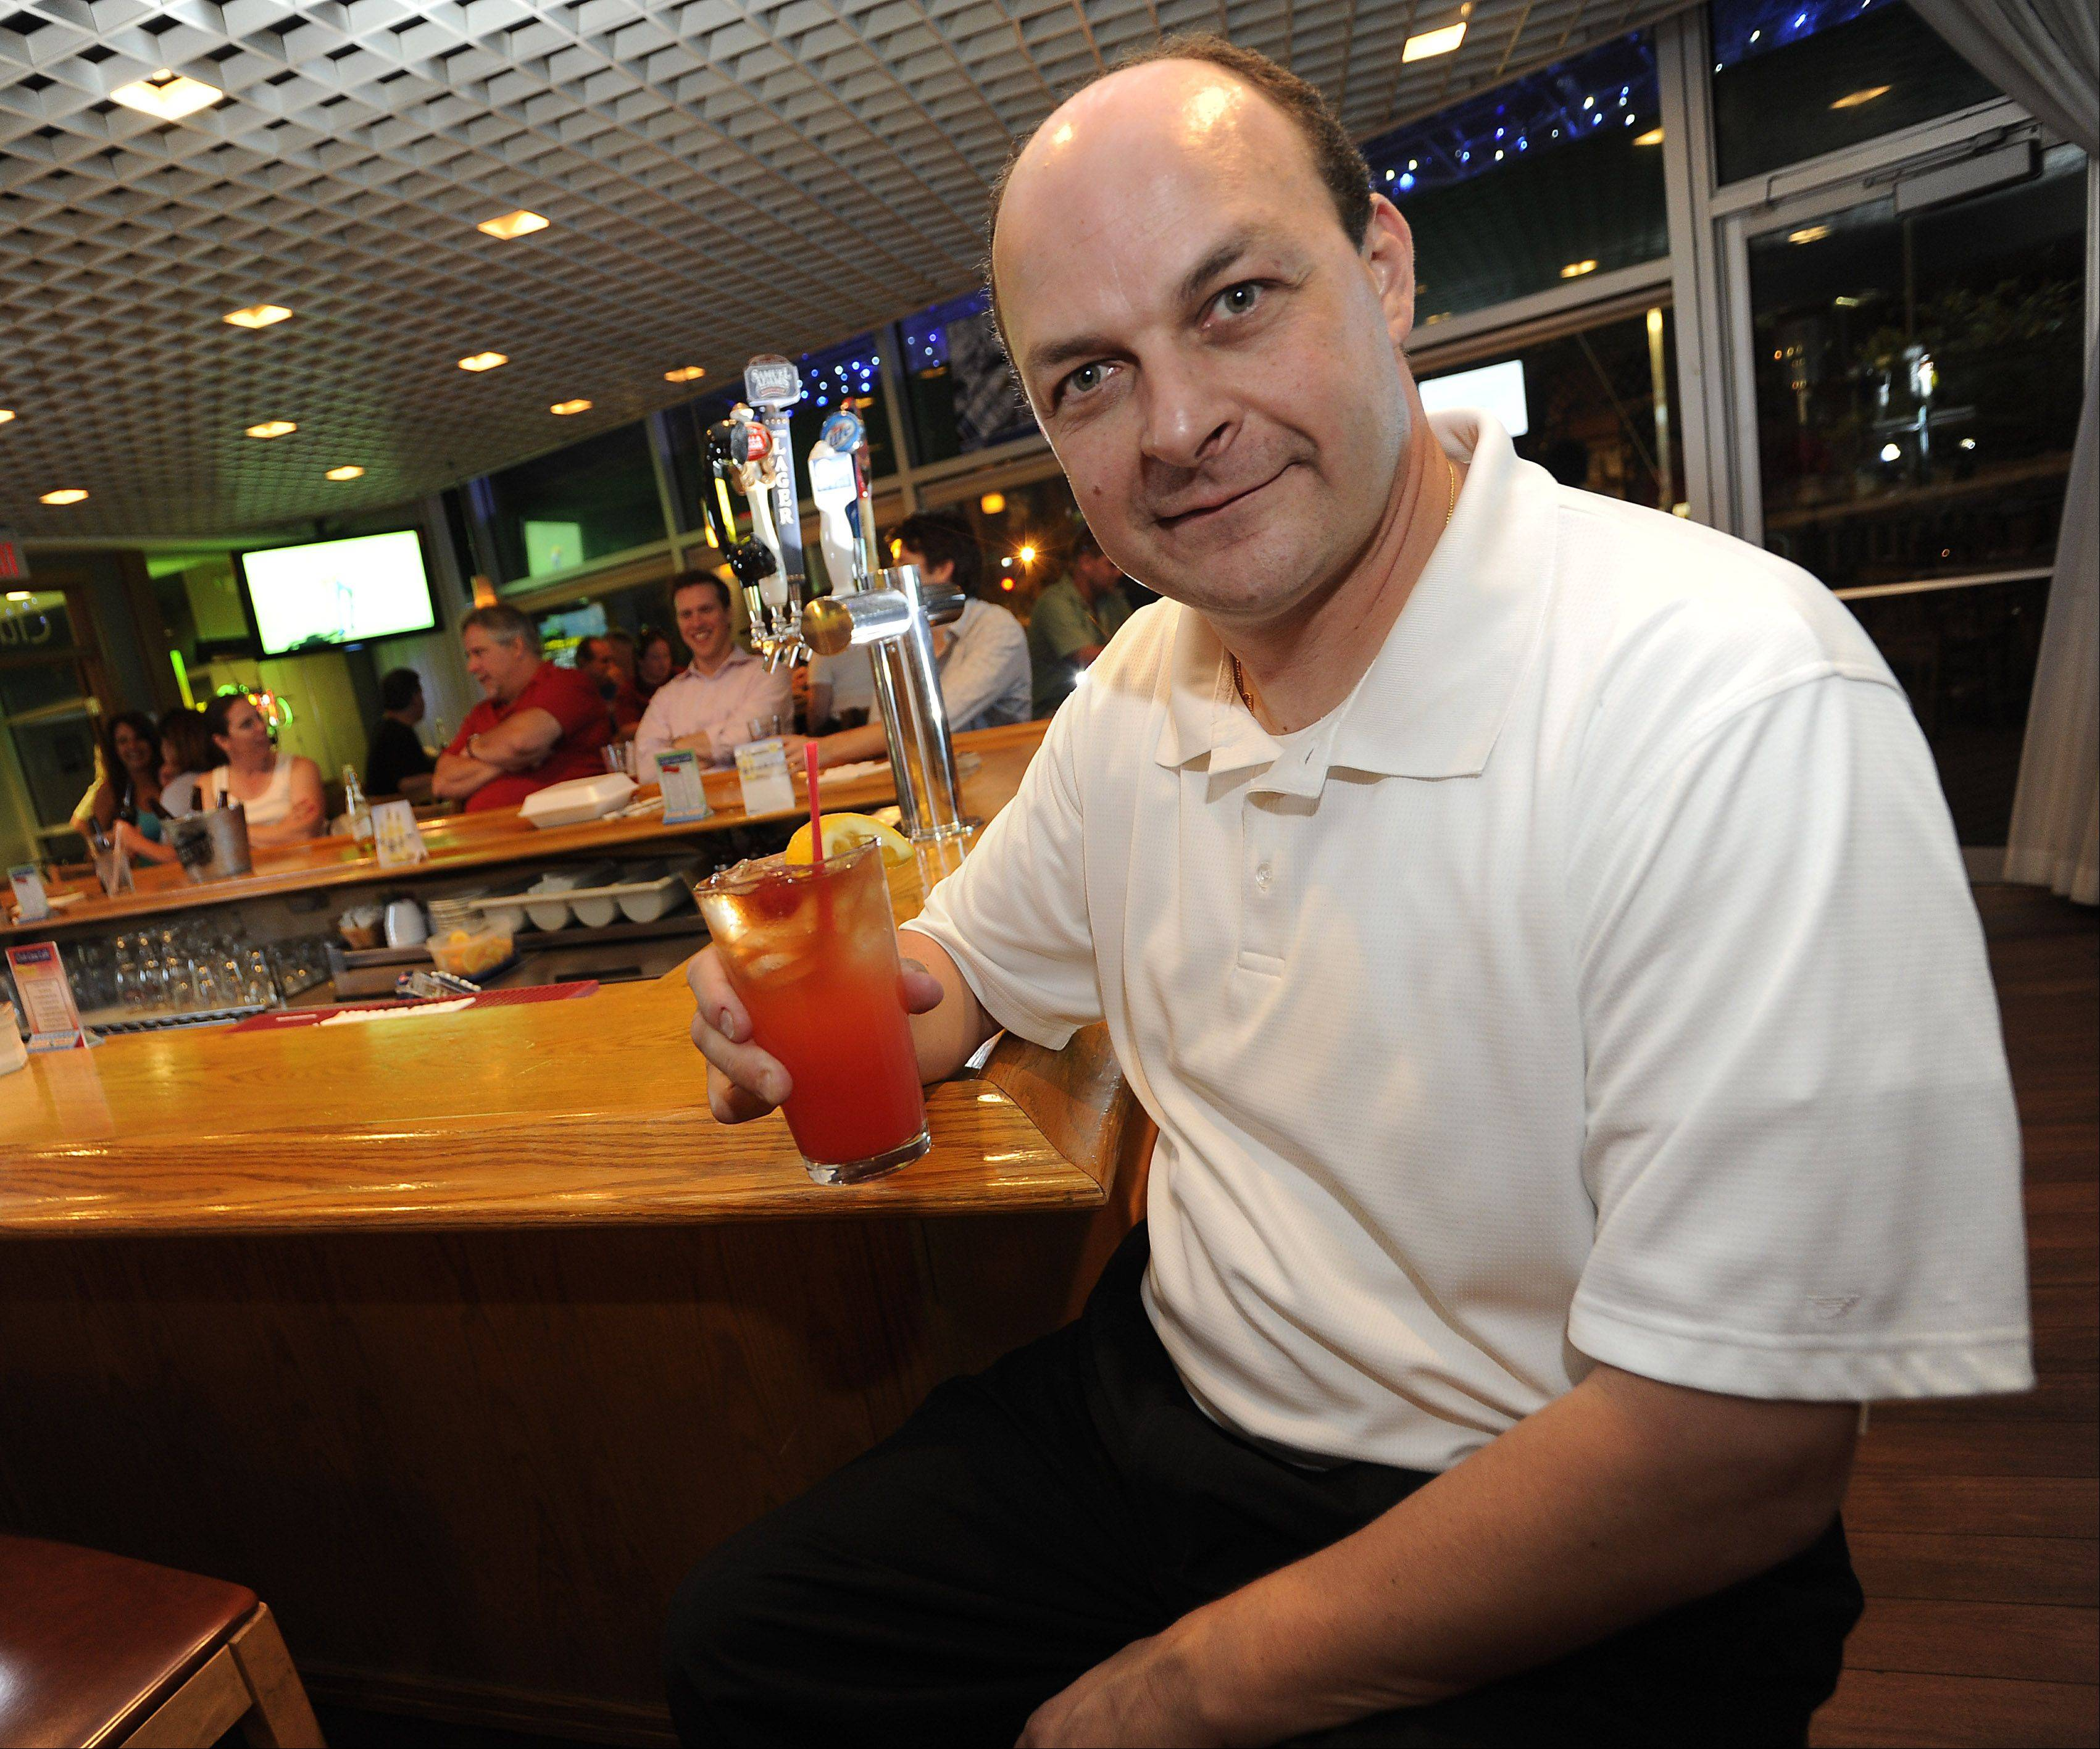 Club Casa Cafe owner Pat Ergastolo shows off his favorite drink, the Club mai tai.